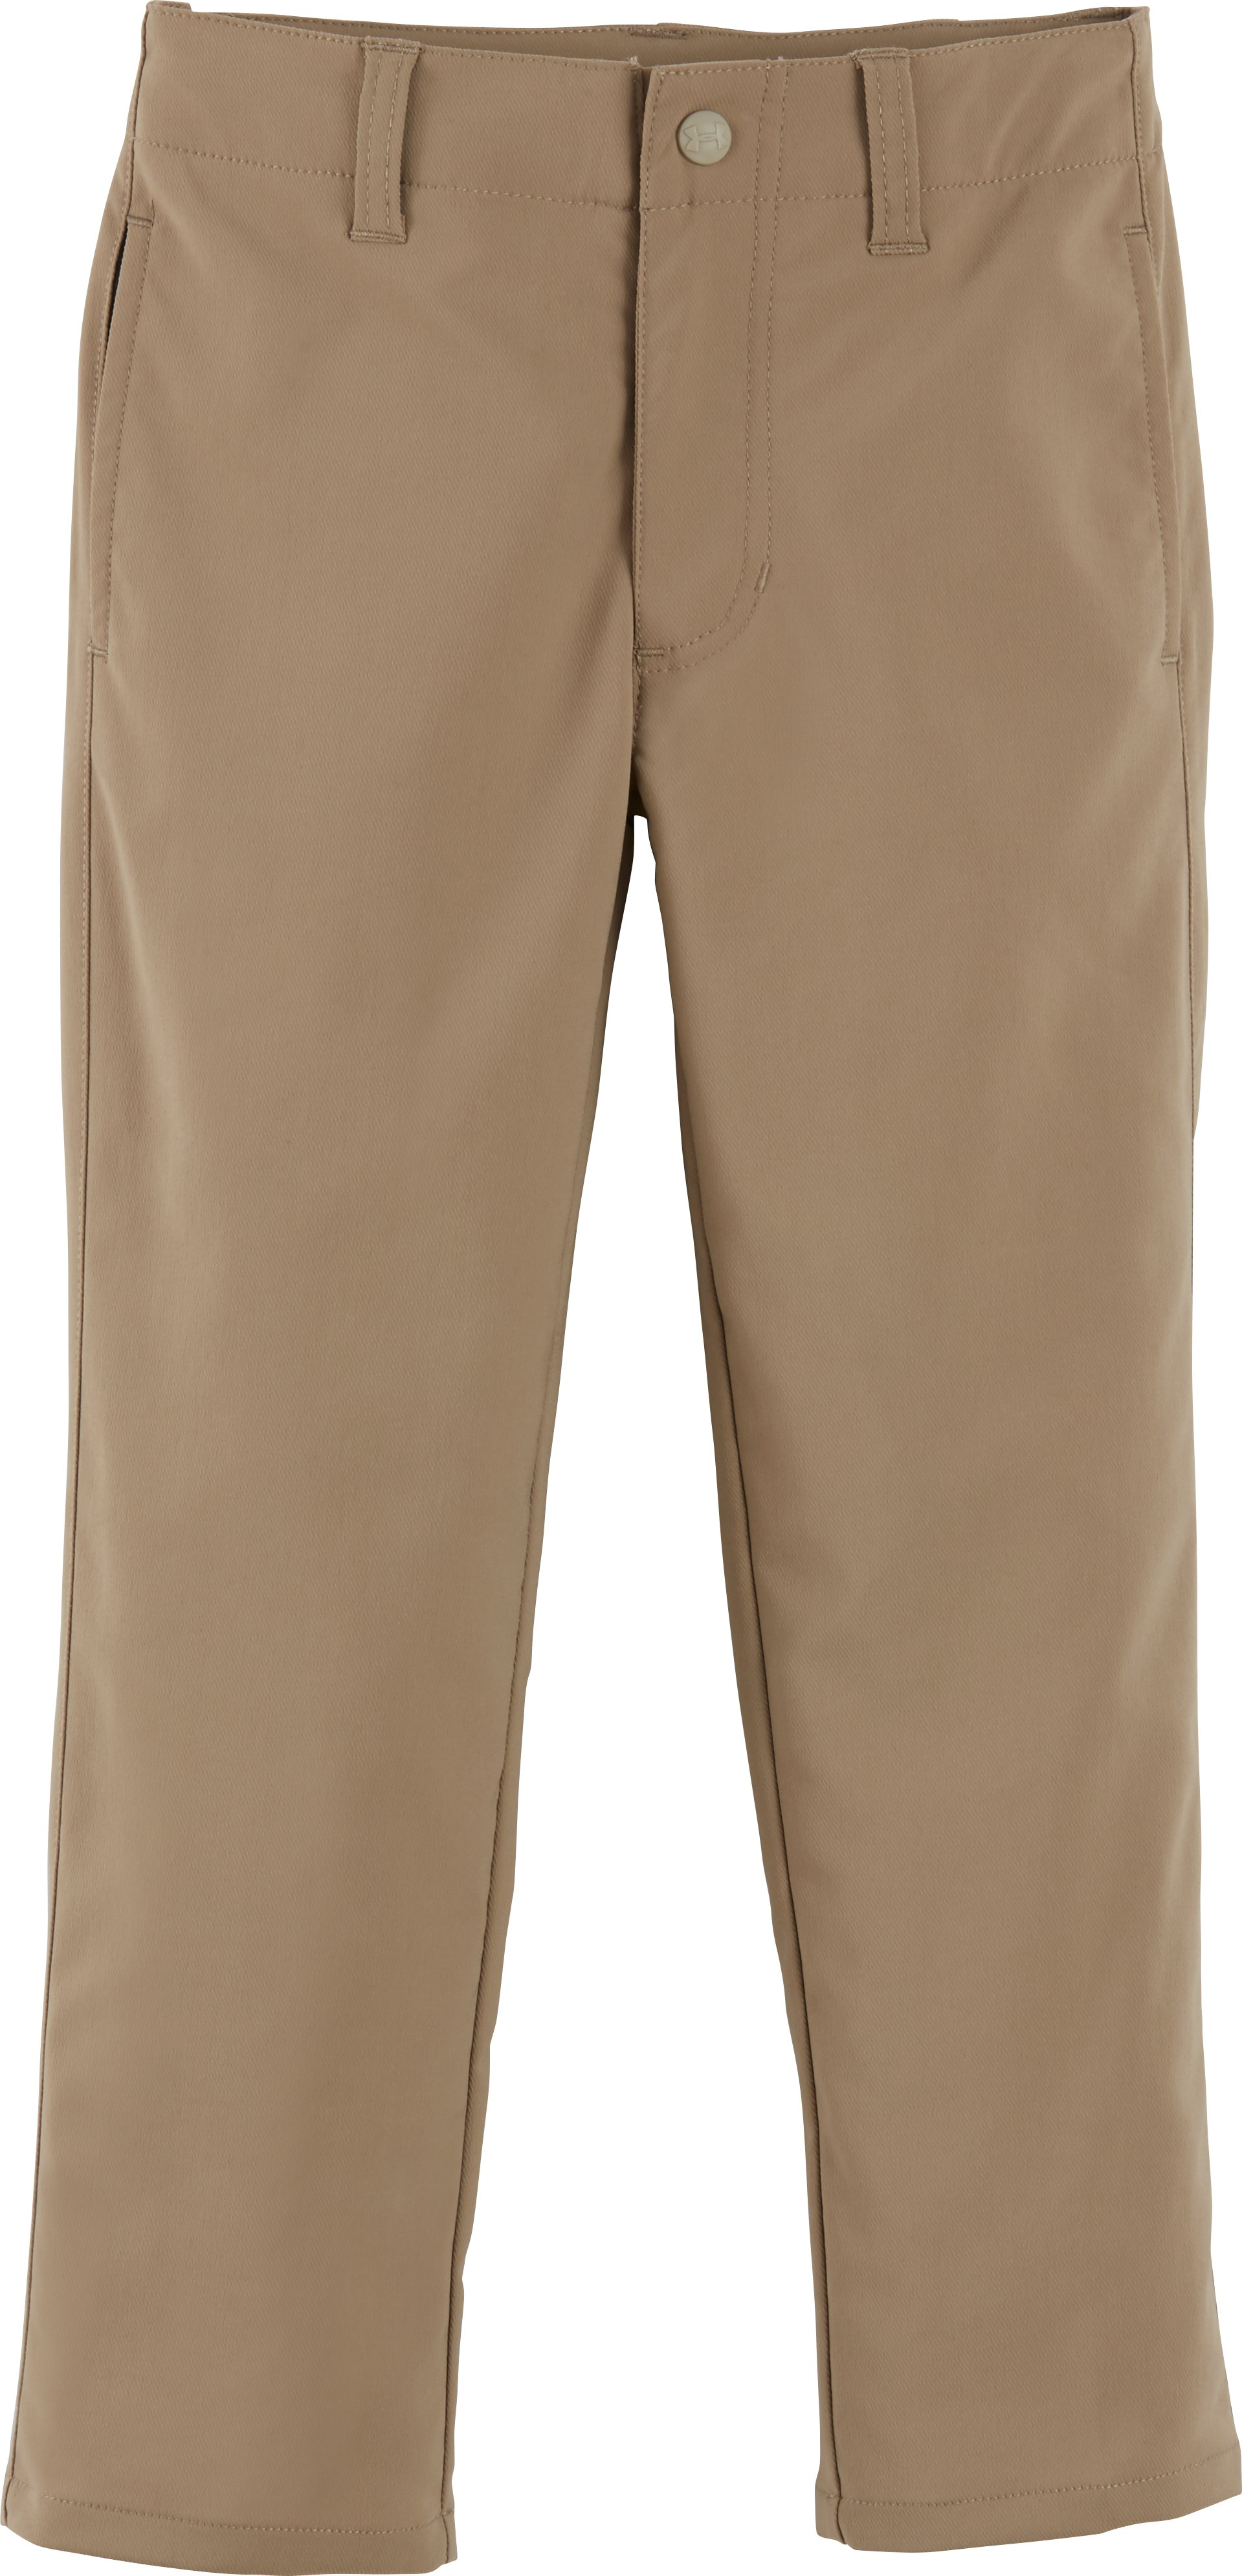 Boys' Pre-School UA Match Play Pants, Canvas